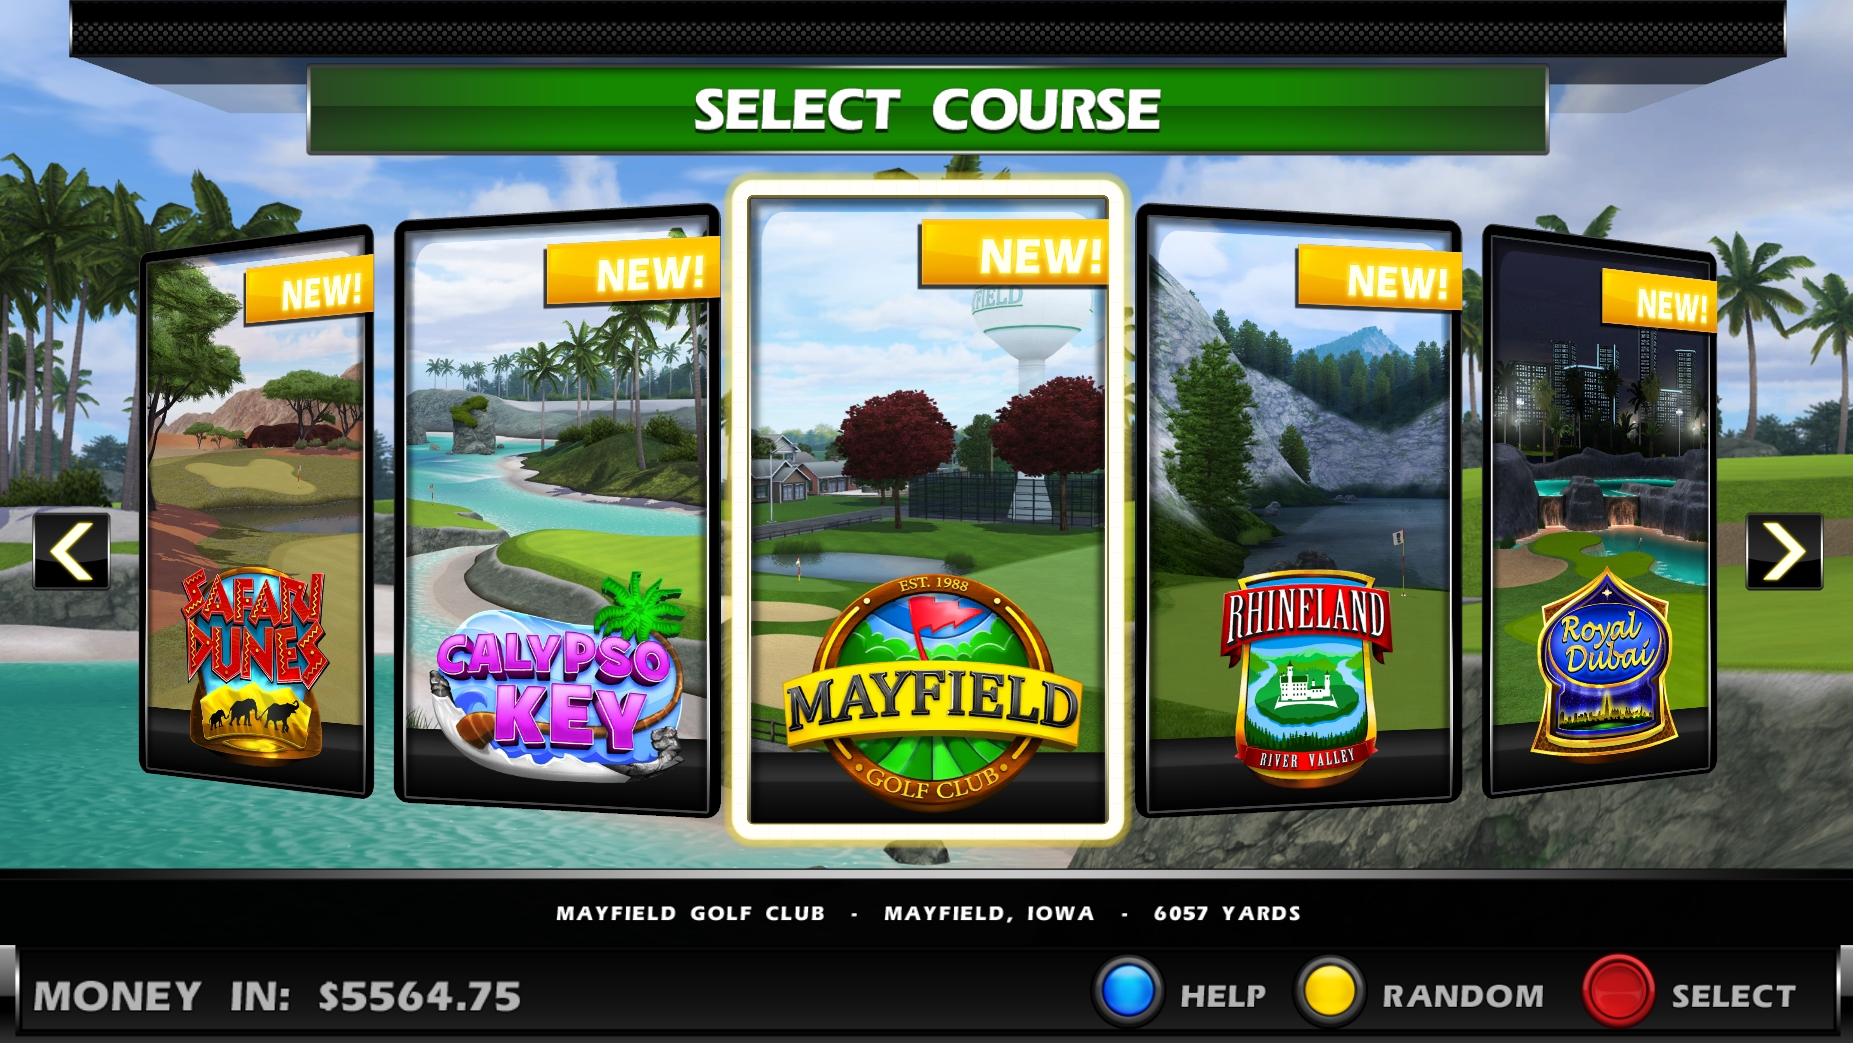 Golden Tee 2018 Courses